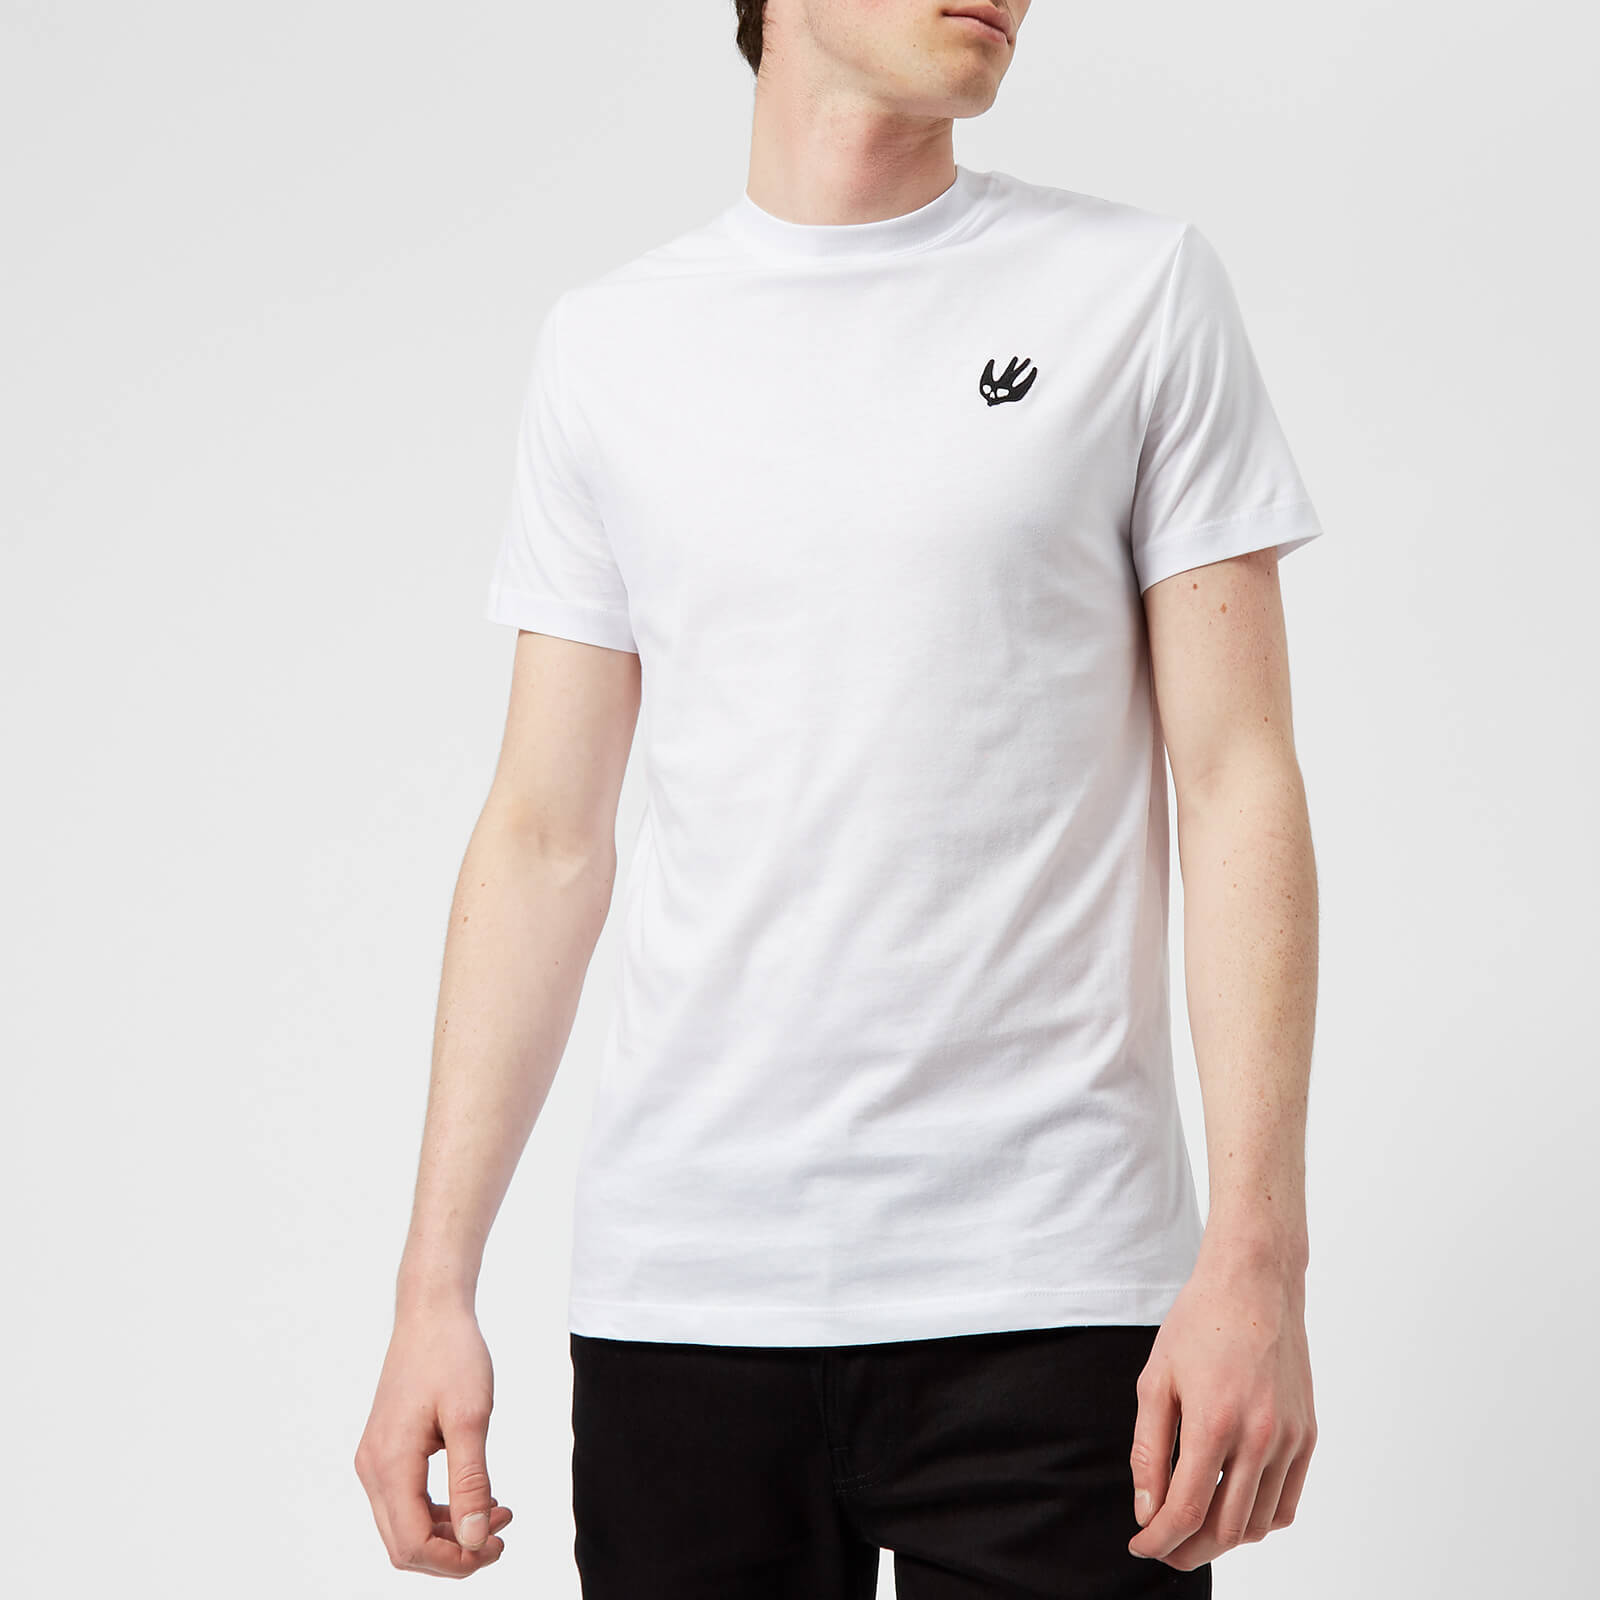 92159ca2e346 McQ Alexander McQueen Men s Short Sleeve Small Swallow Logo Crew Neck  T-Shirt - Optic White - Free UK Delivery over £50